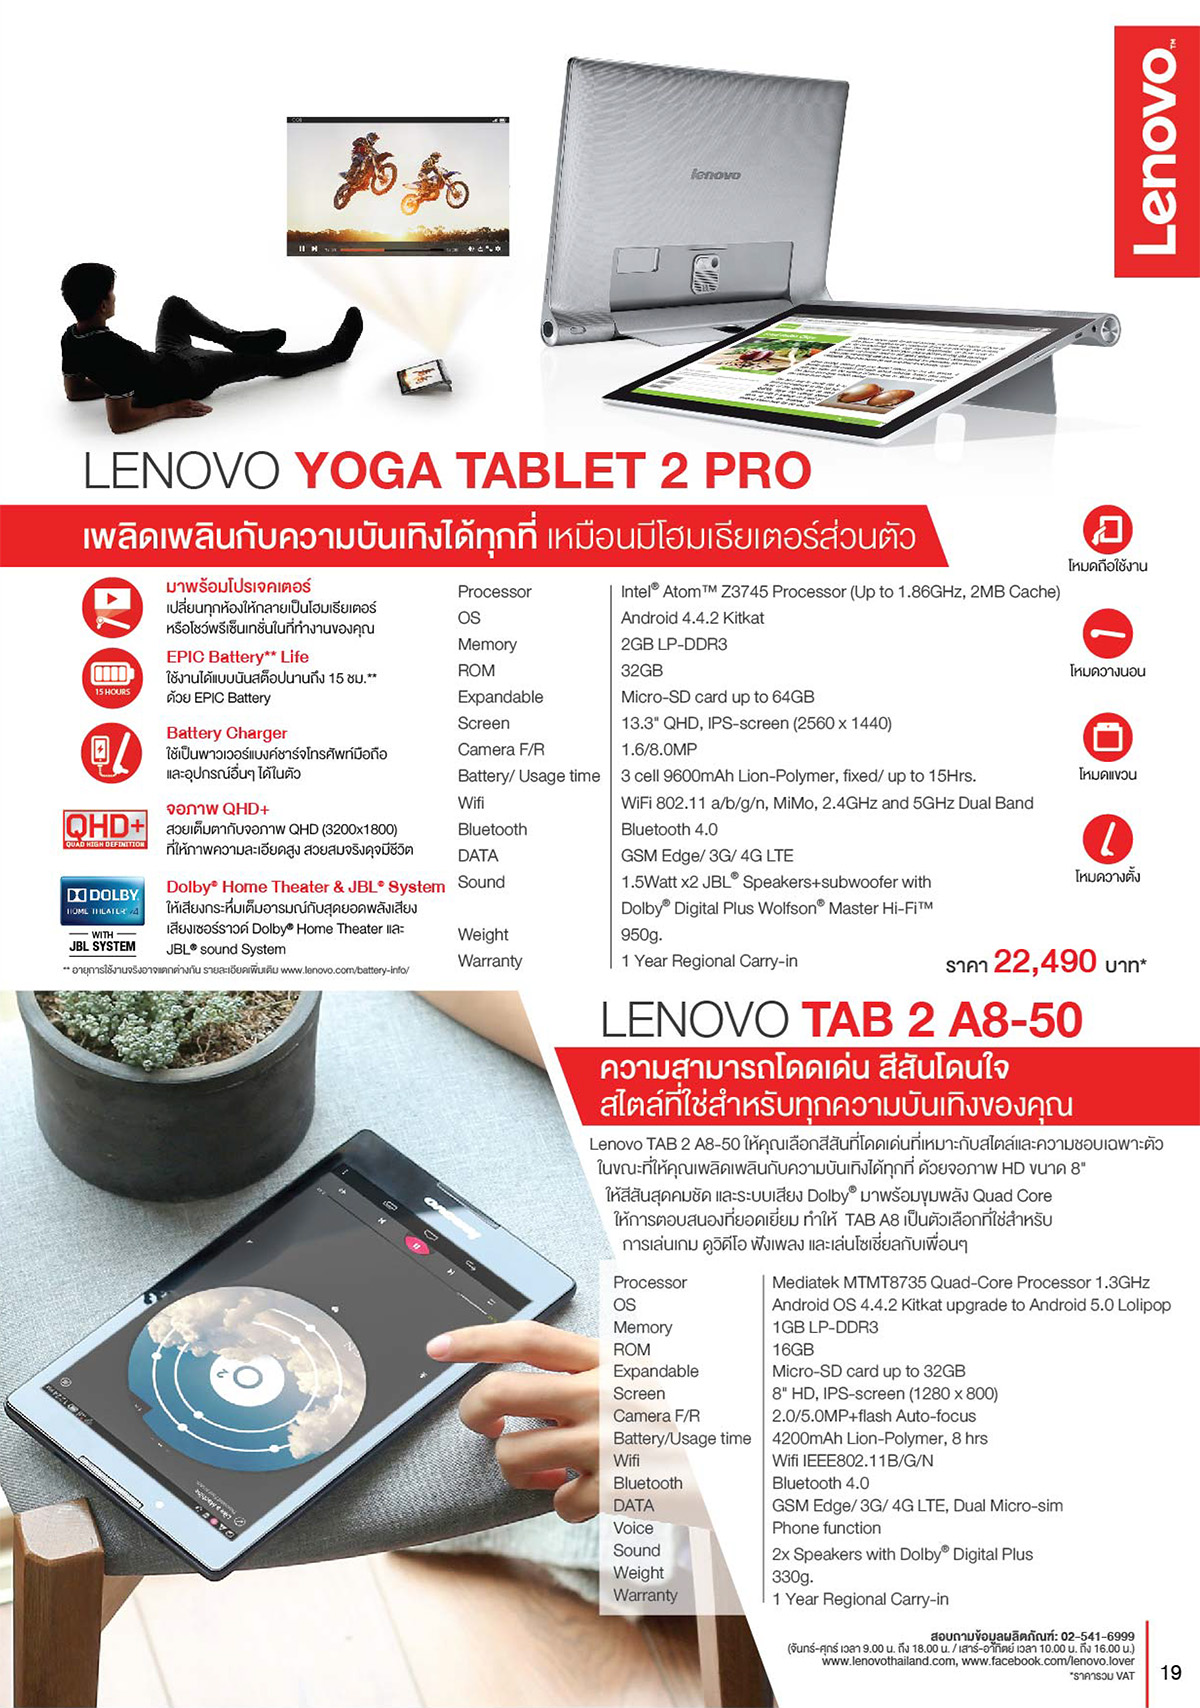 Lenovo Consumer Product Catalog Q2FY15_Final AW-19